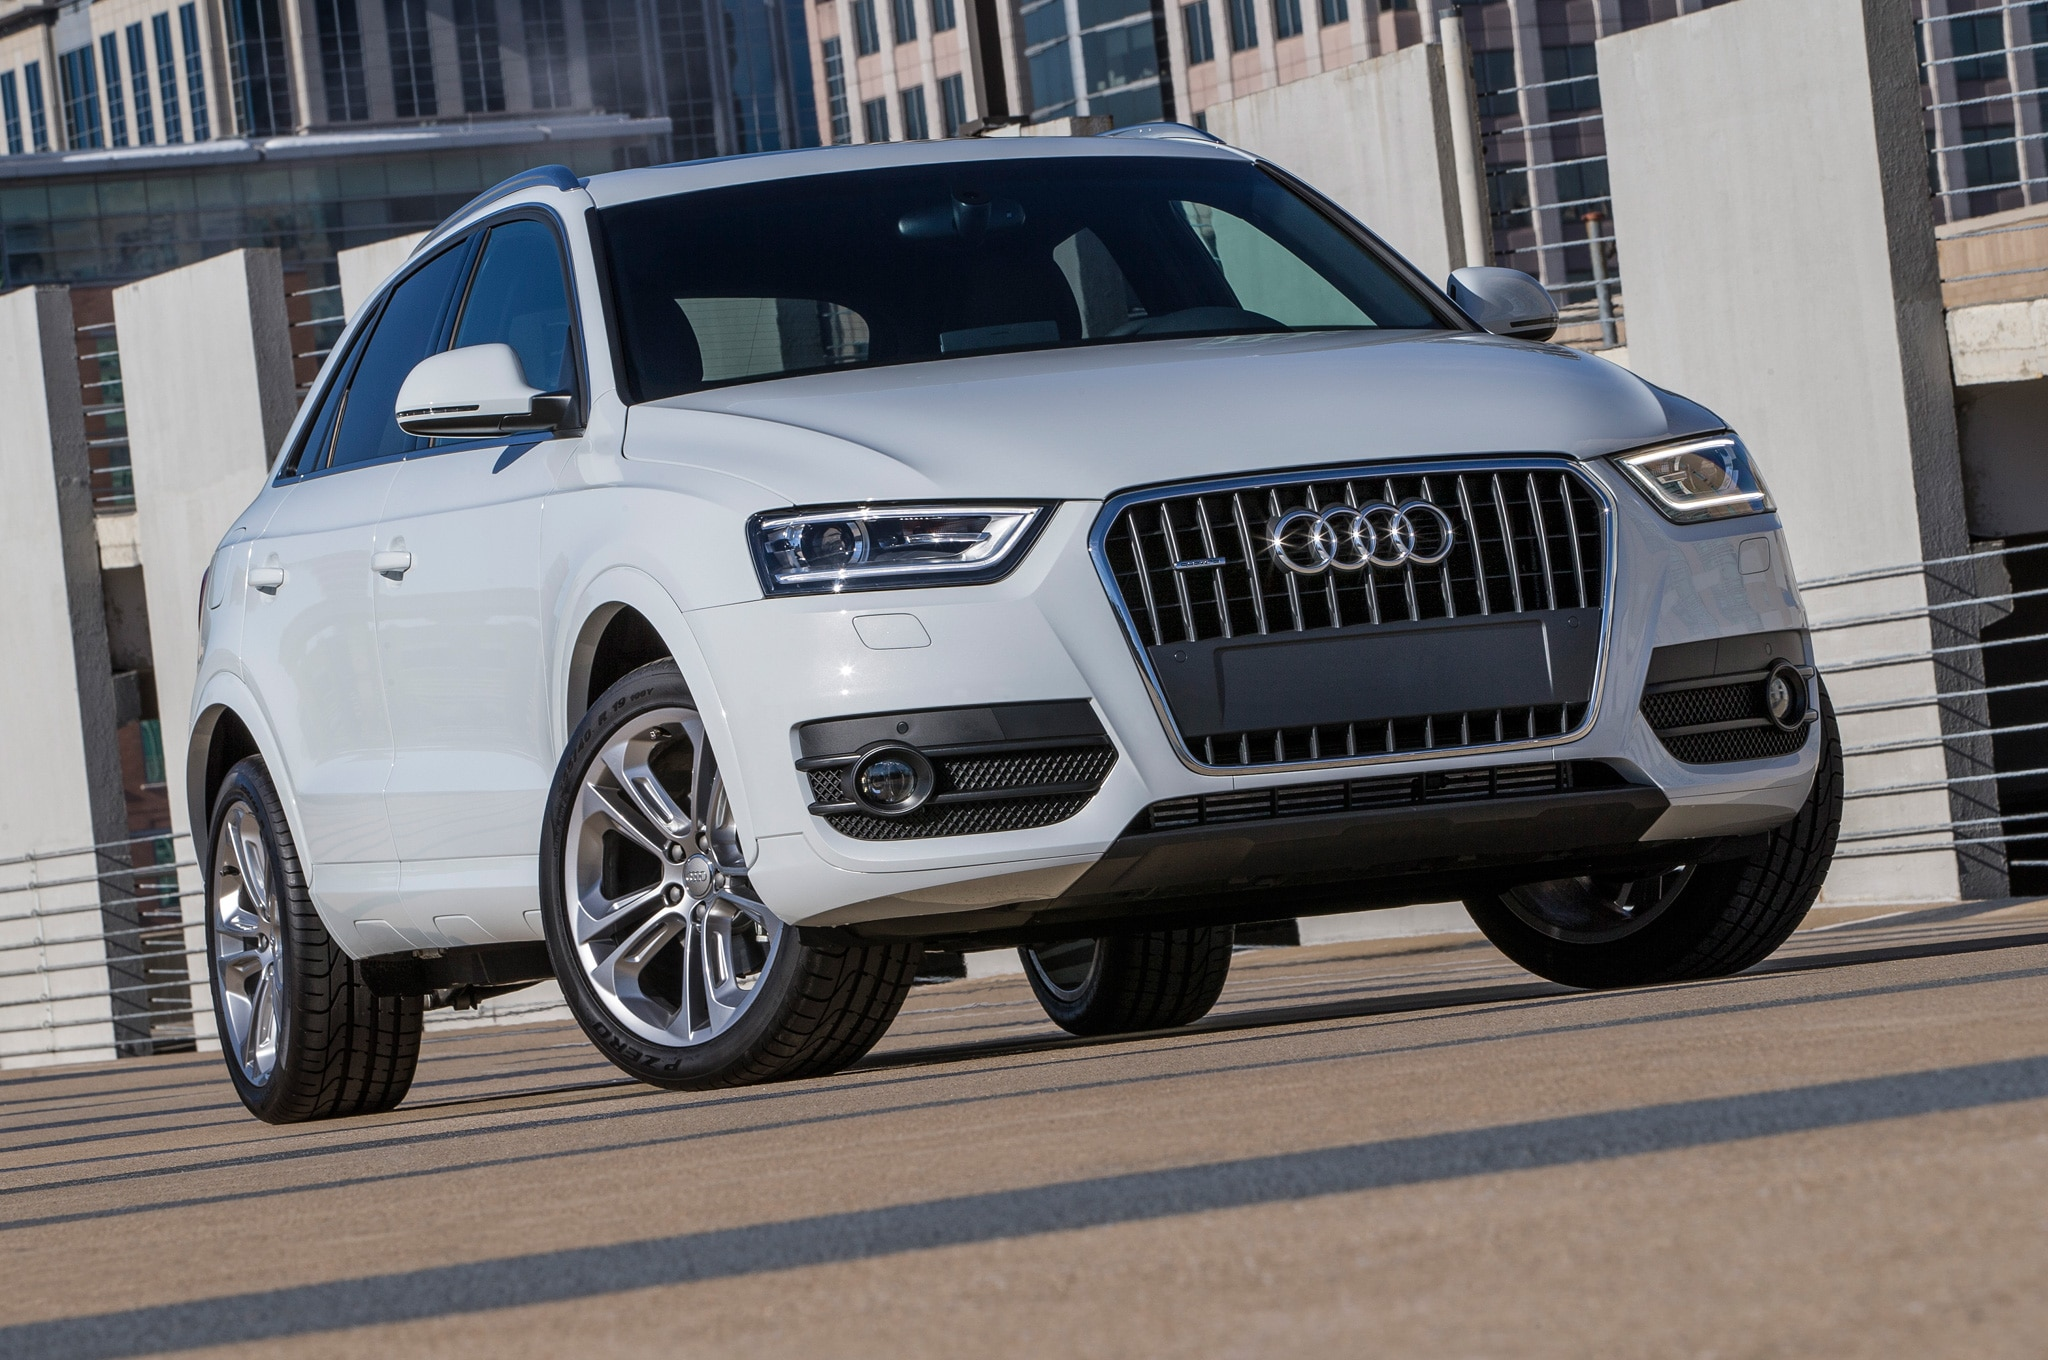 2015 Audi Q3 Priced at $33,425, Slightly More than GLA